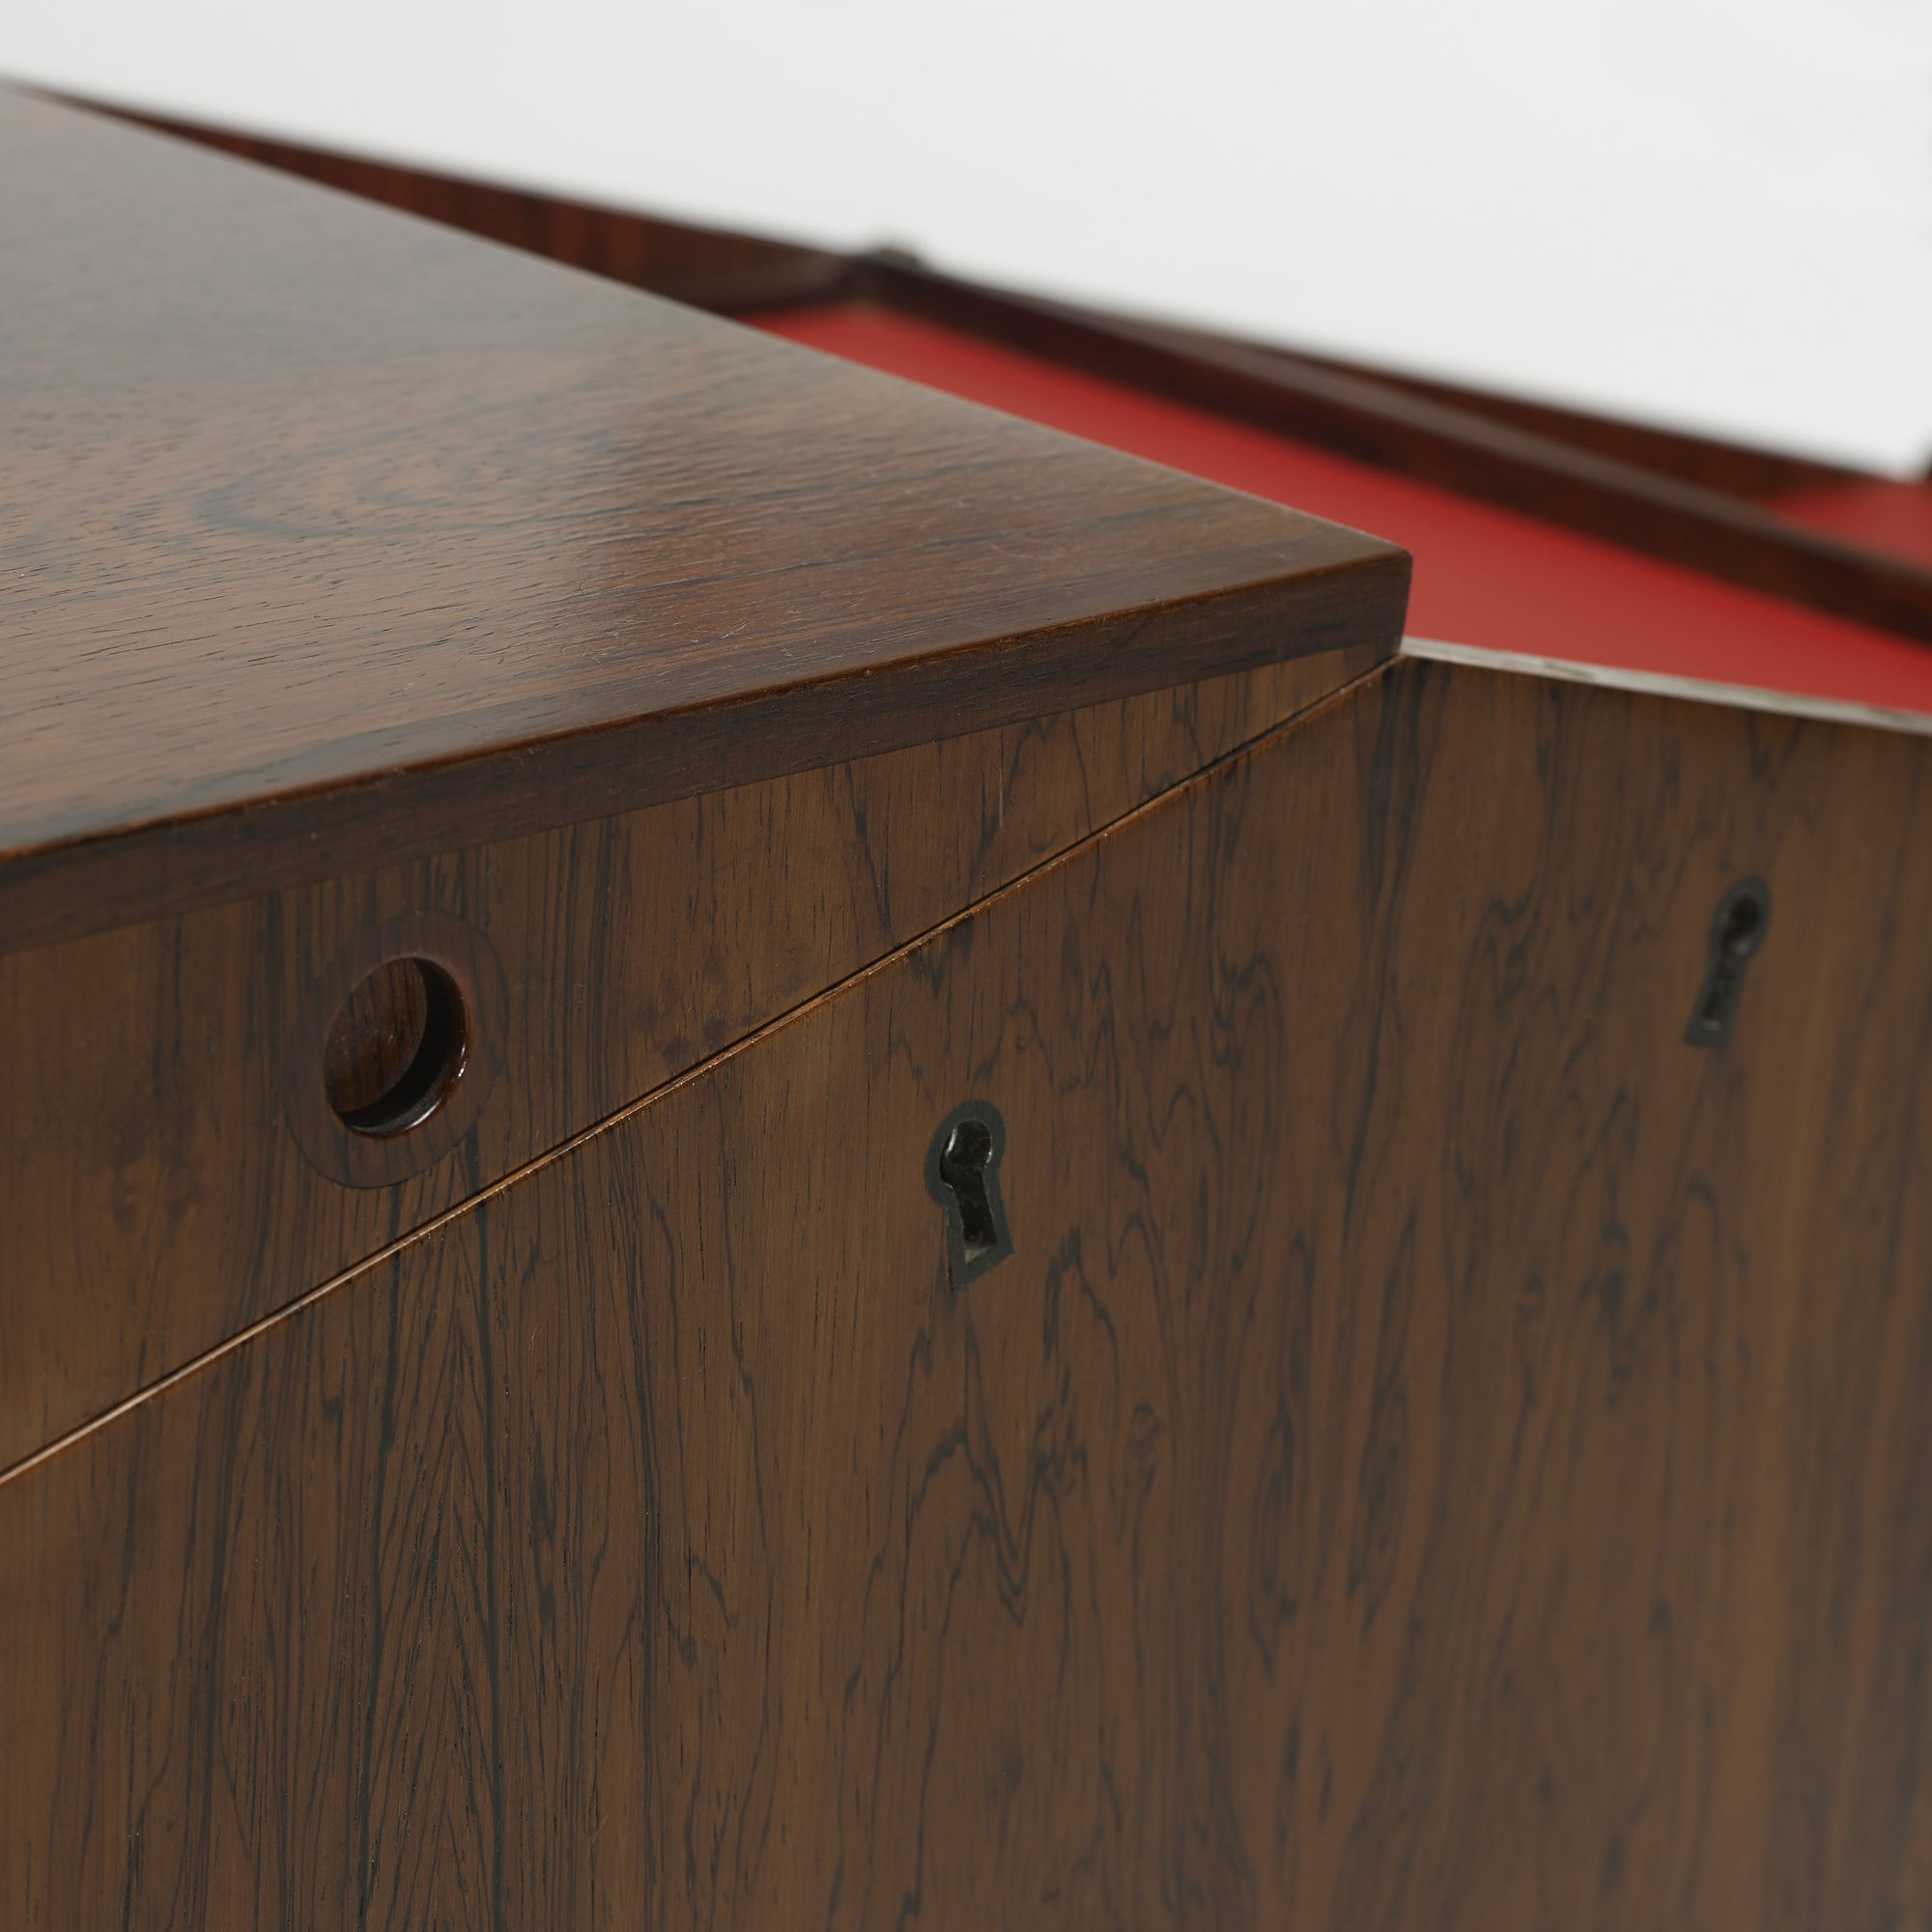 184: Leif Alring / bar cabinet (3 of 4)